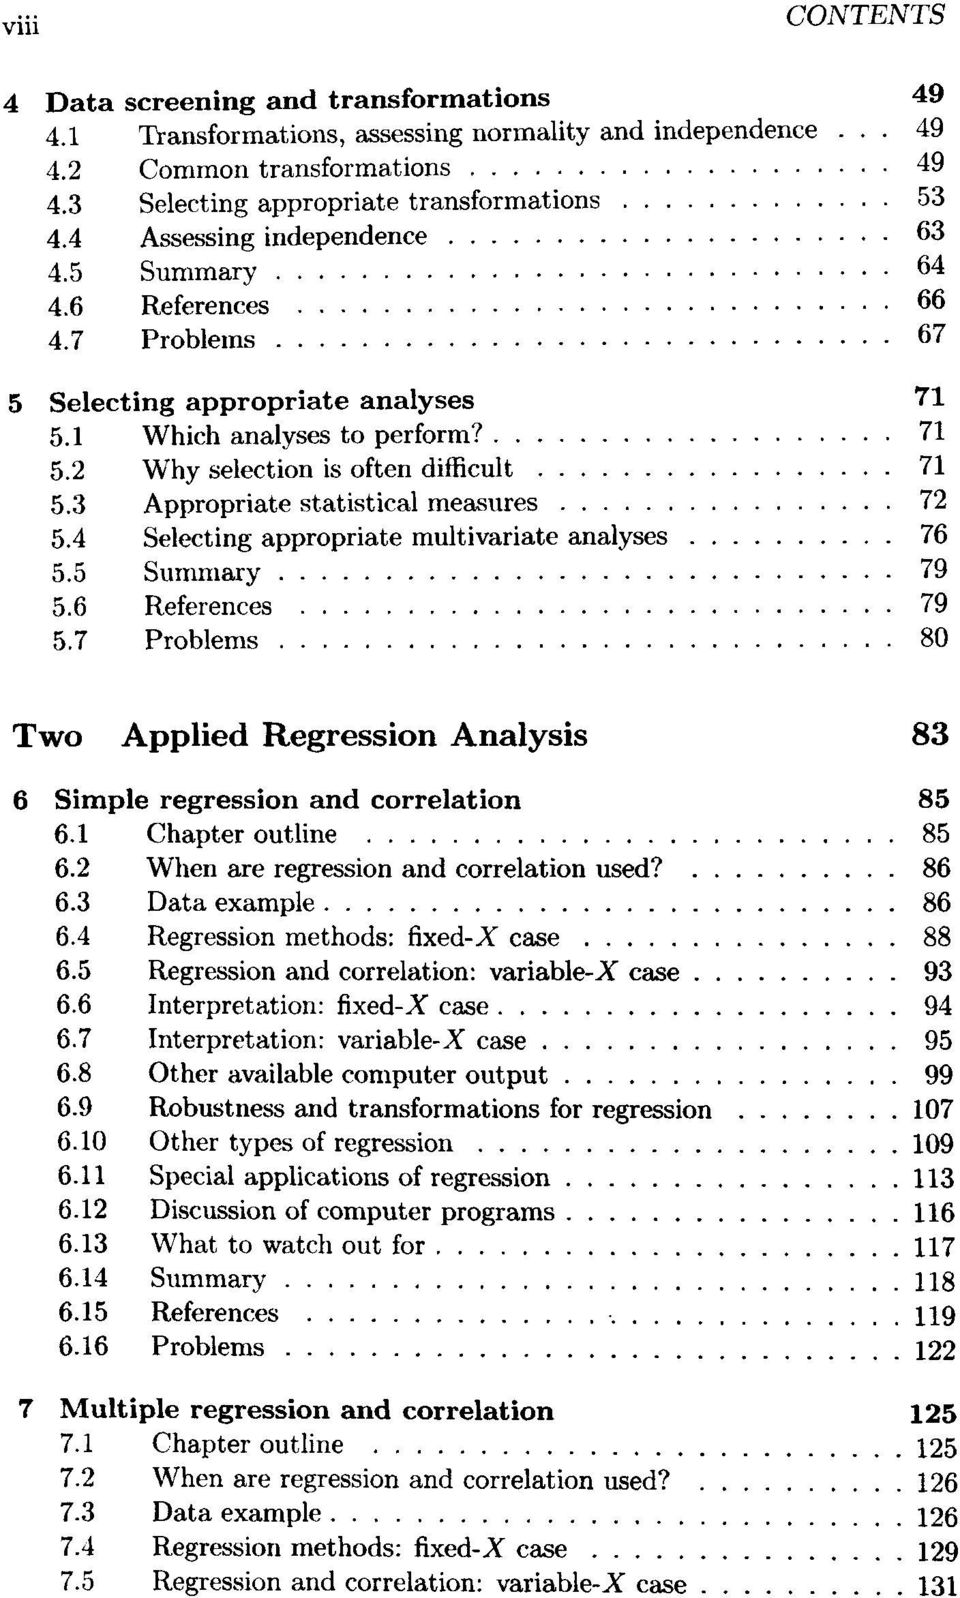 3 Appropriate statistical measures 72 5.4 Selecting appropriate multivariate analyses 76 5.5 Summary 79 5.6 References 79 5.